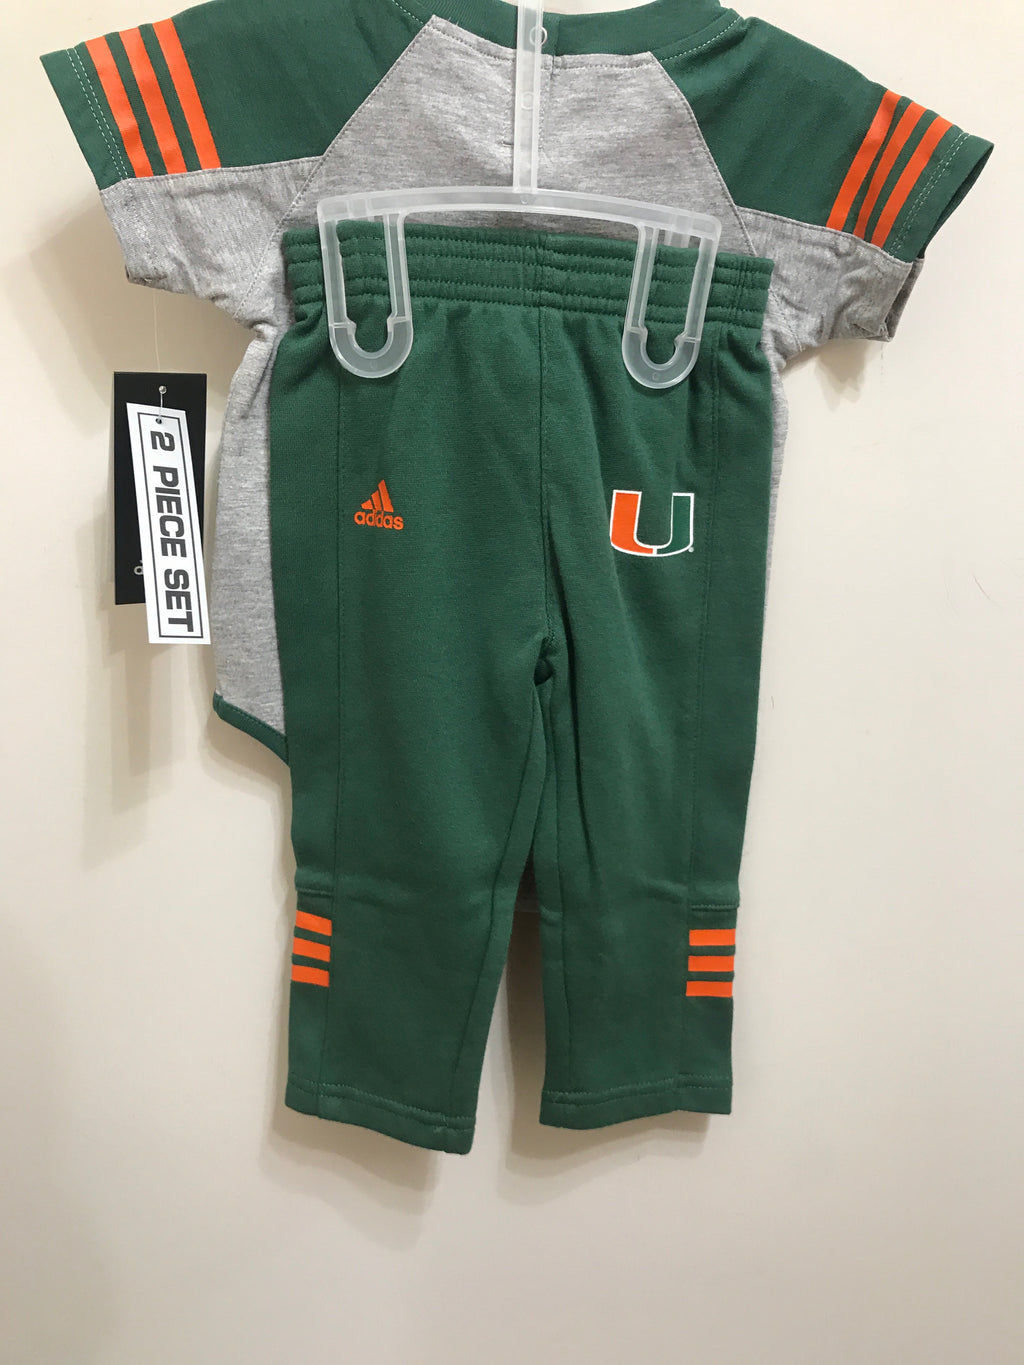 Miami Hurricanes Onesie Pants Set- Miami Rules